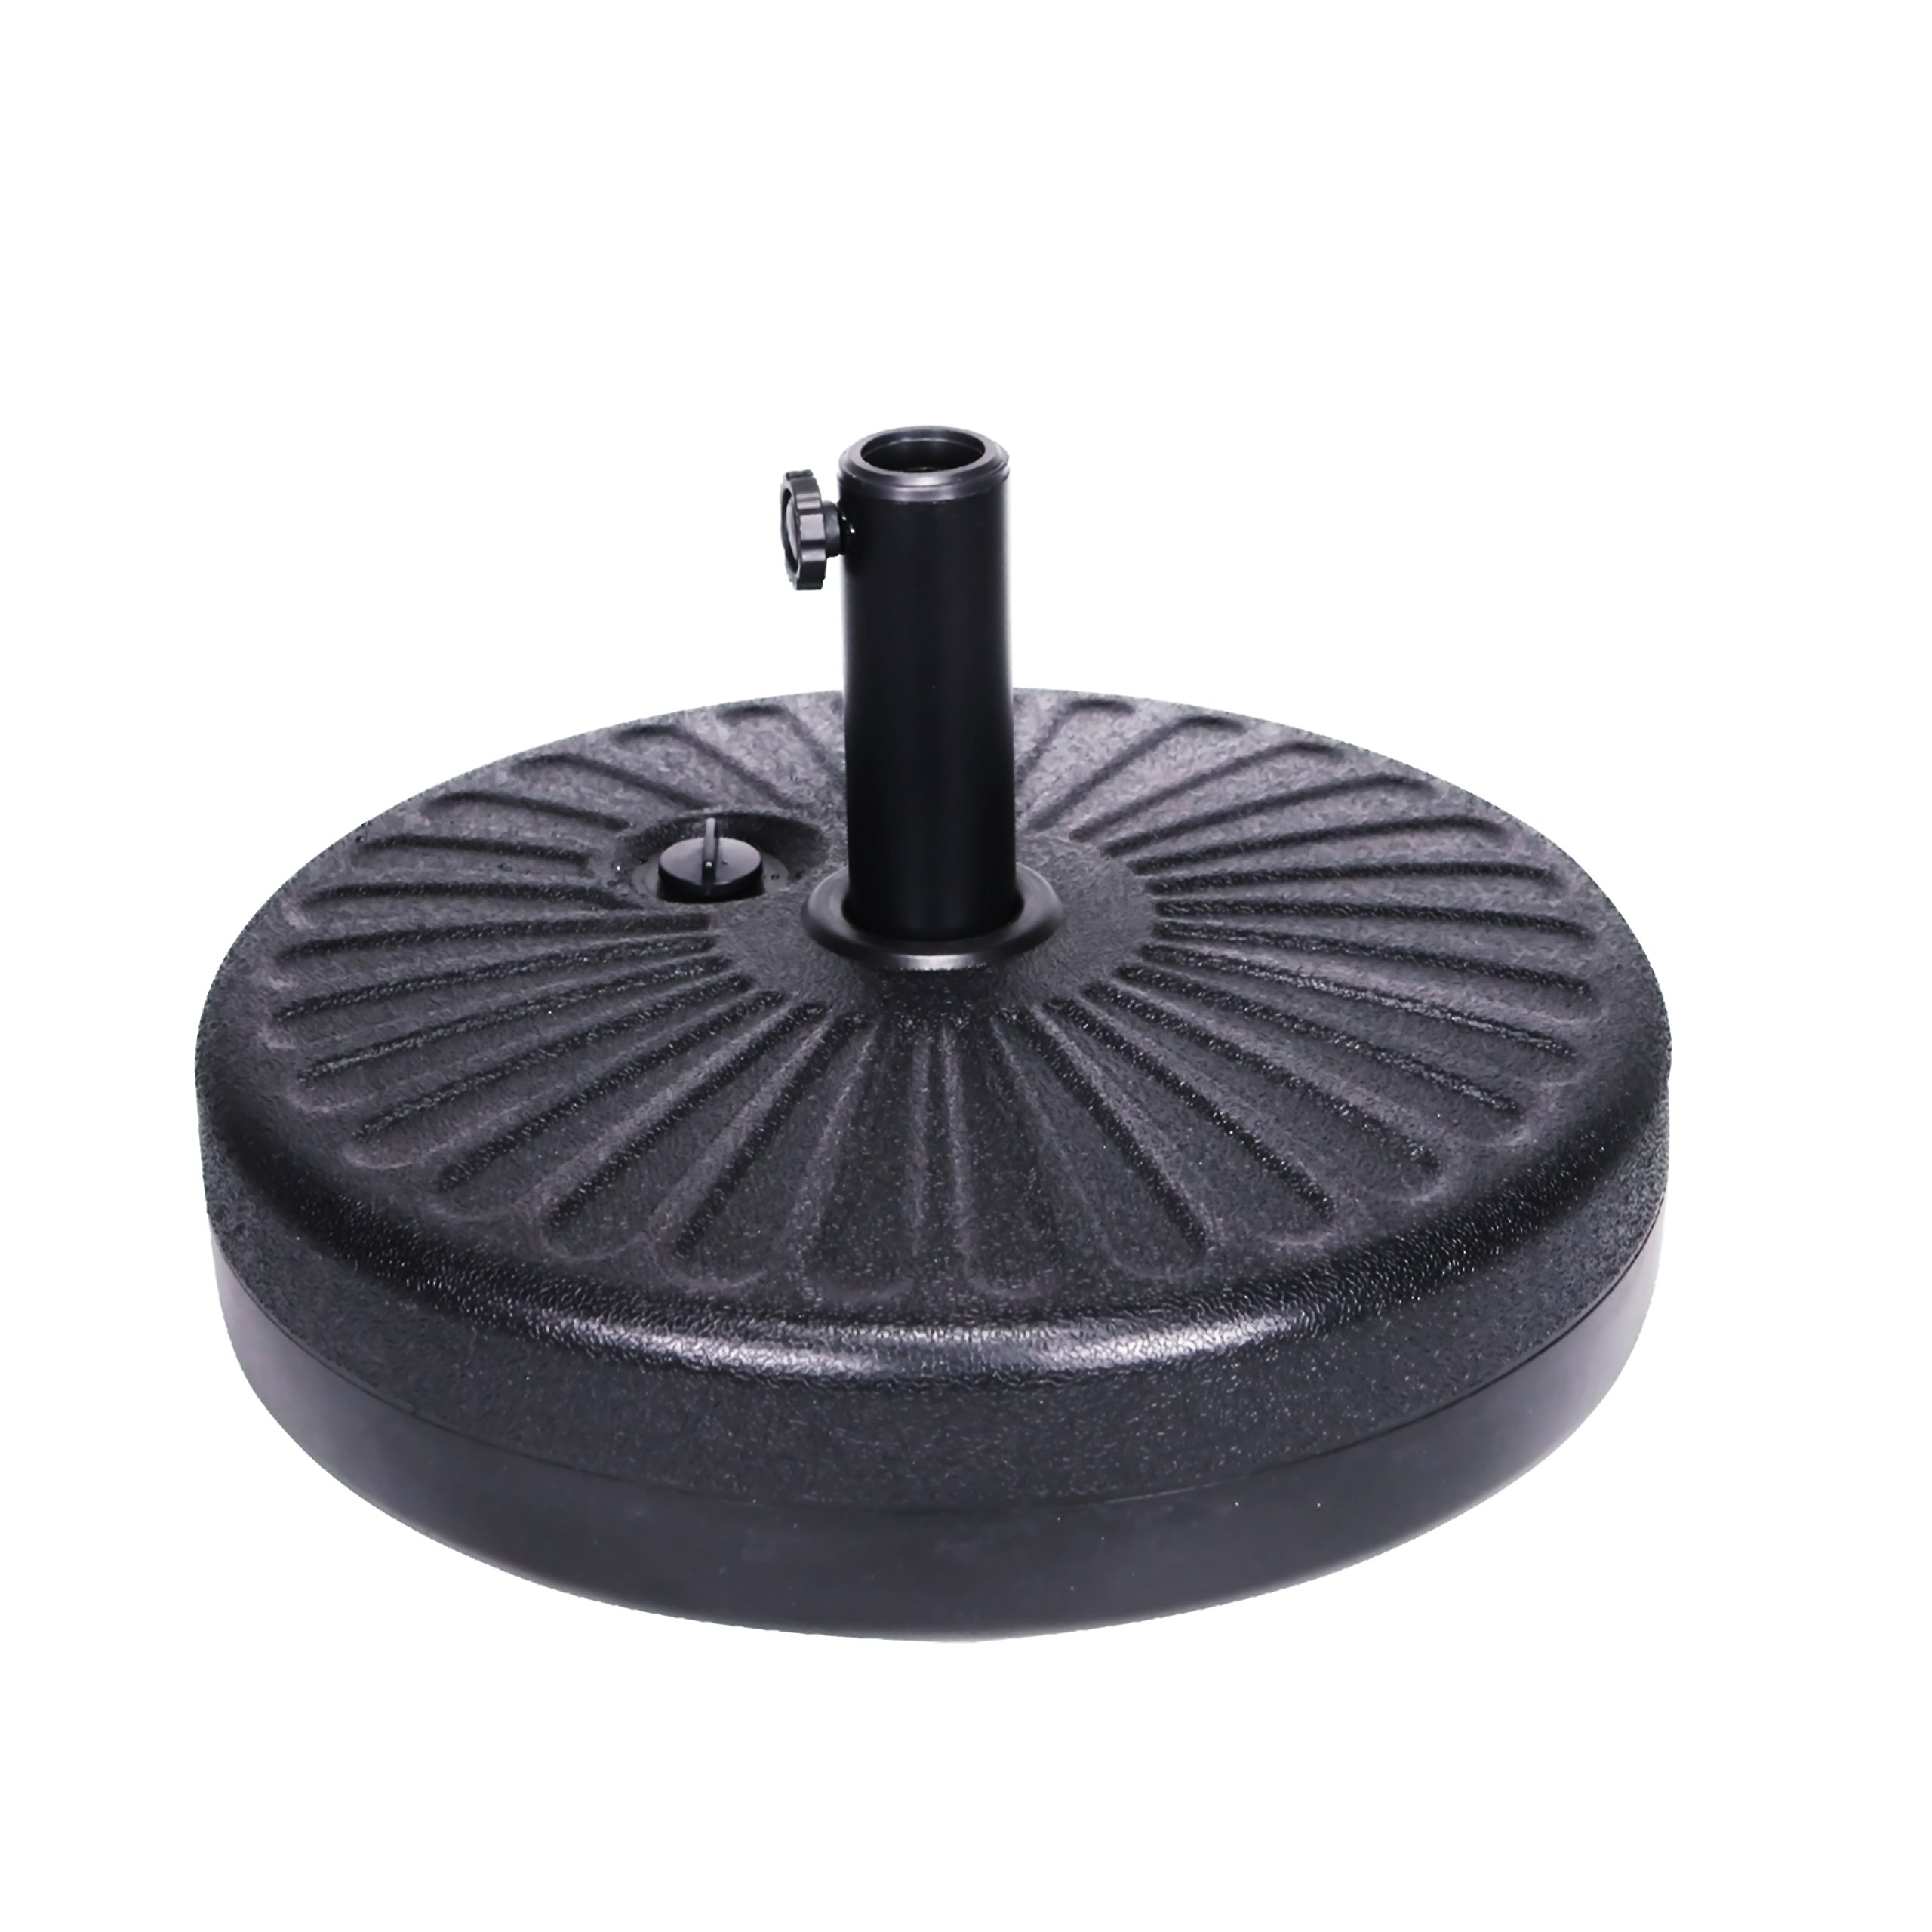 Grand patio Umbrella Base,Eco-friendly HDPE Fabric Fill with Water 50lbs Umbrella Stand Pole Holder for Garden Lawn Poolside, 20 Inch(Black)